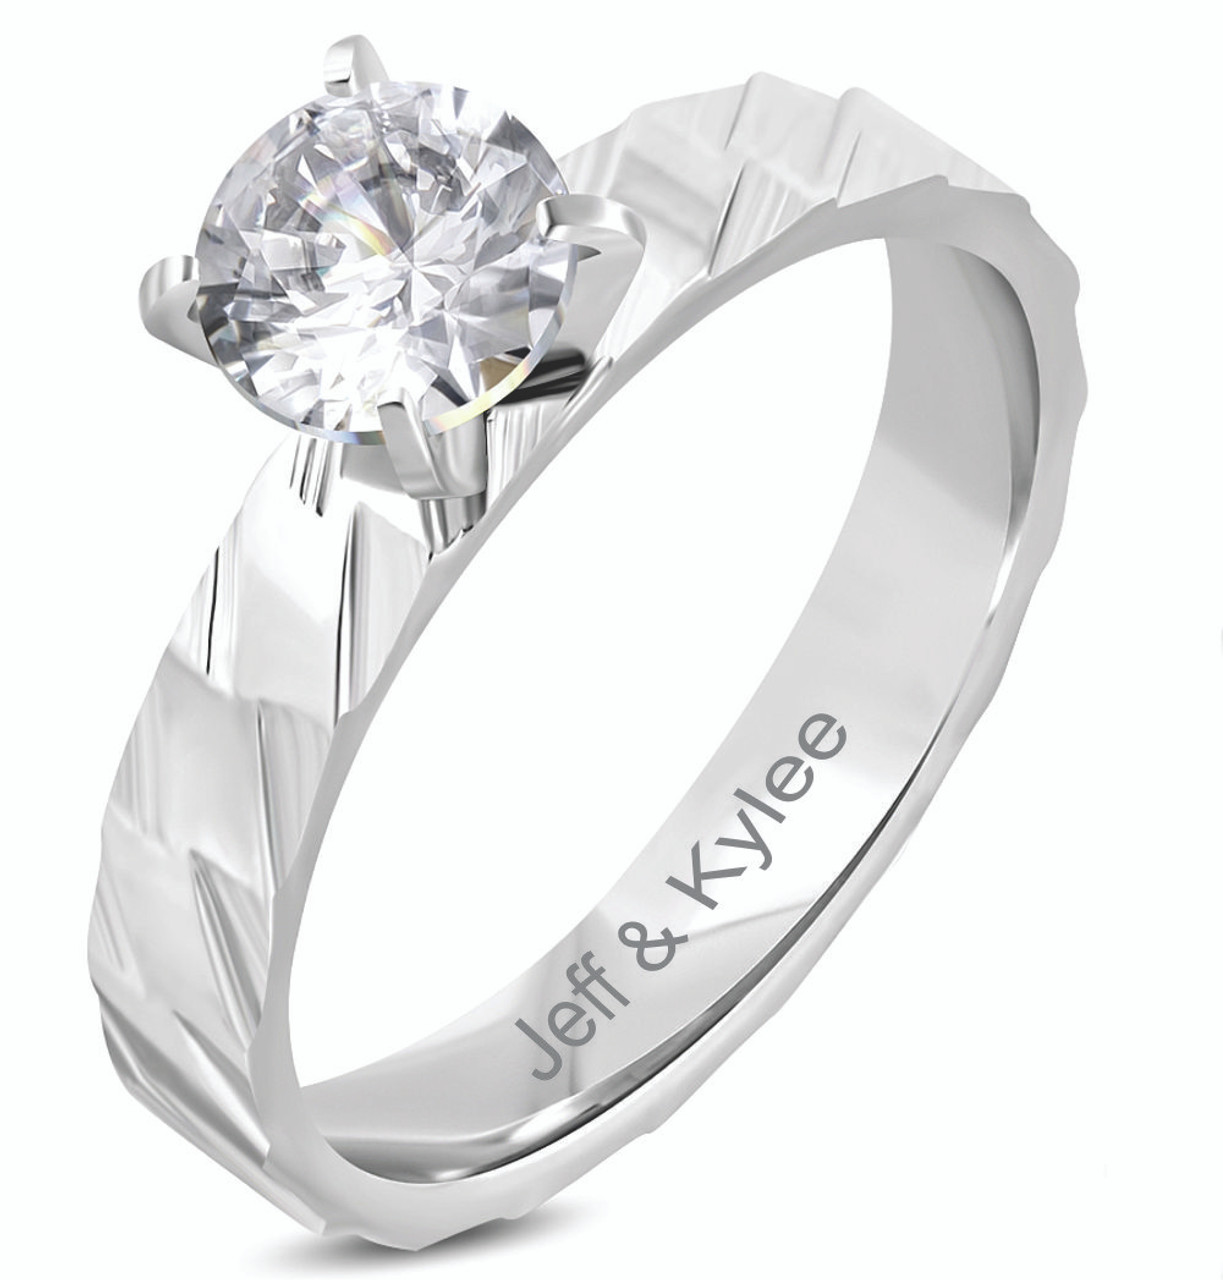 Stainless Steel Plain Half-Round Wedding Band Ring with Clear CZ